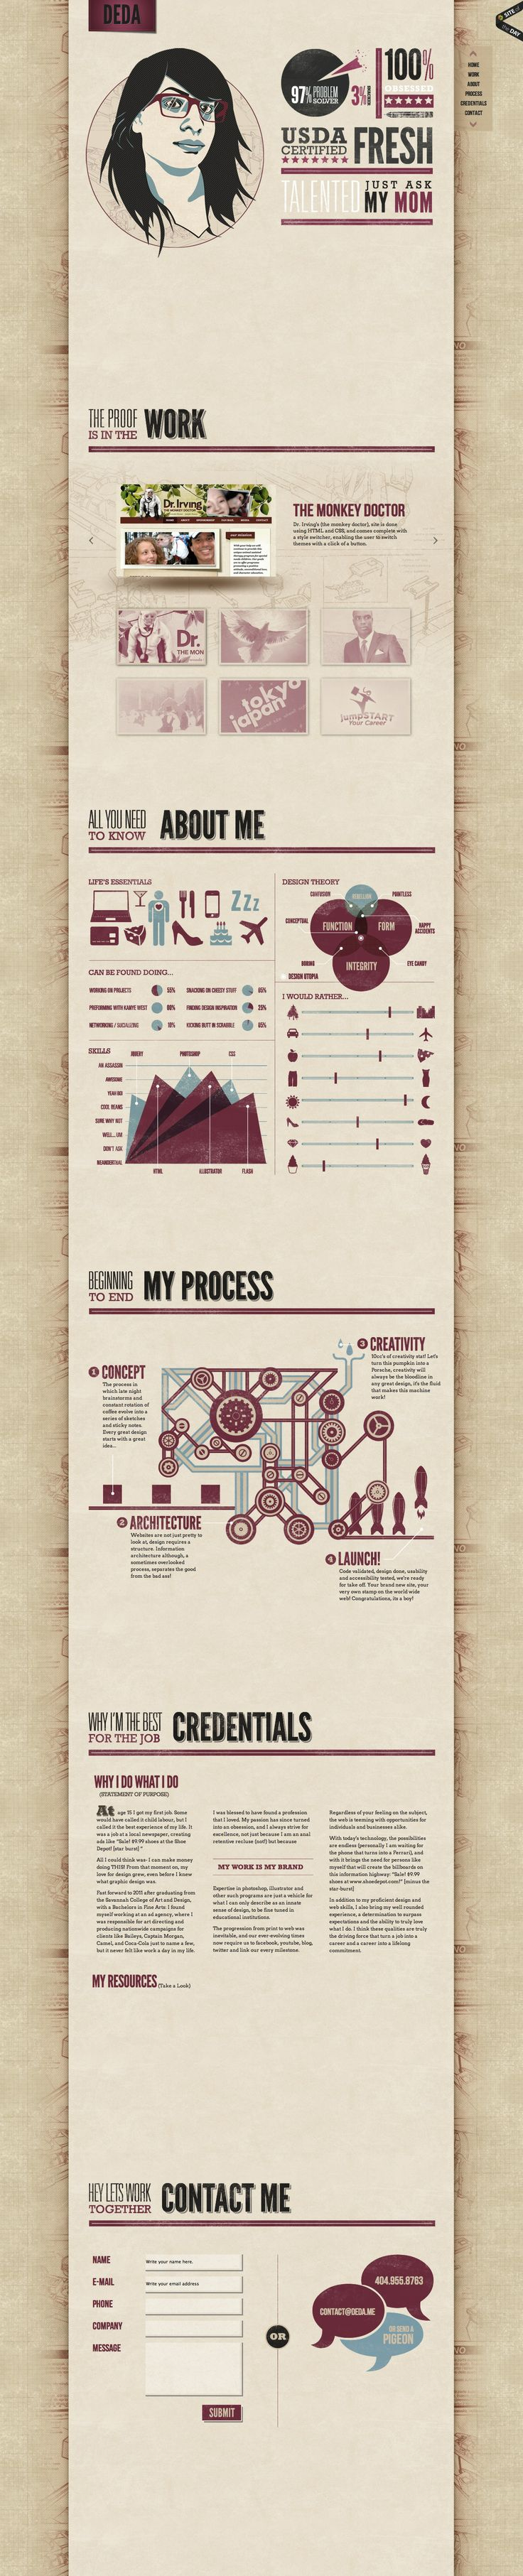 113 Best Designed Cv Images On Pinterest Cv Design Resume Ideas